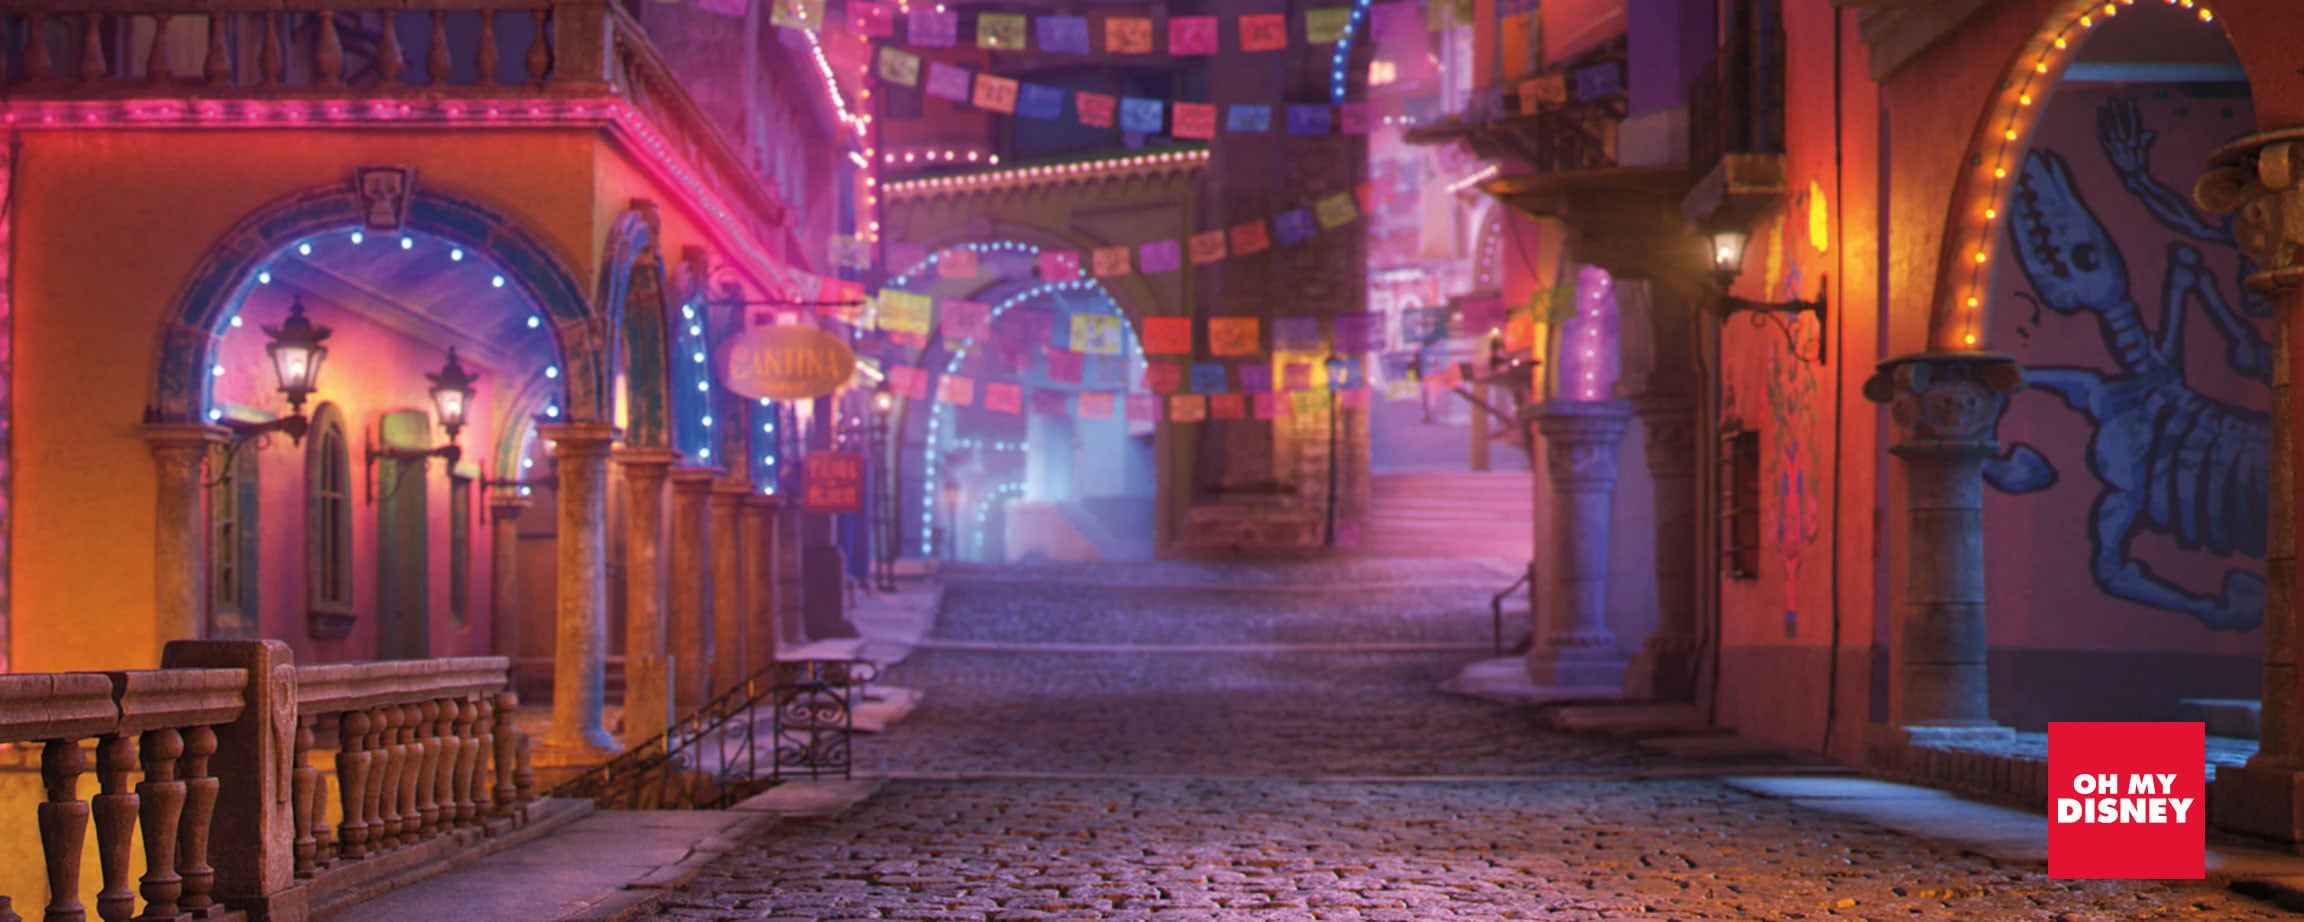 Pixar Coco Video Background